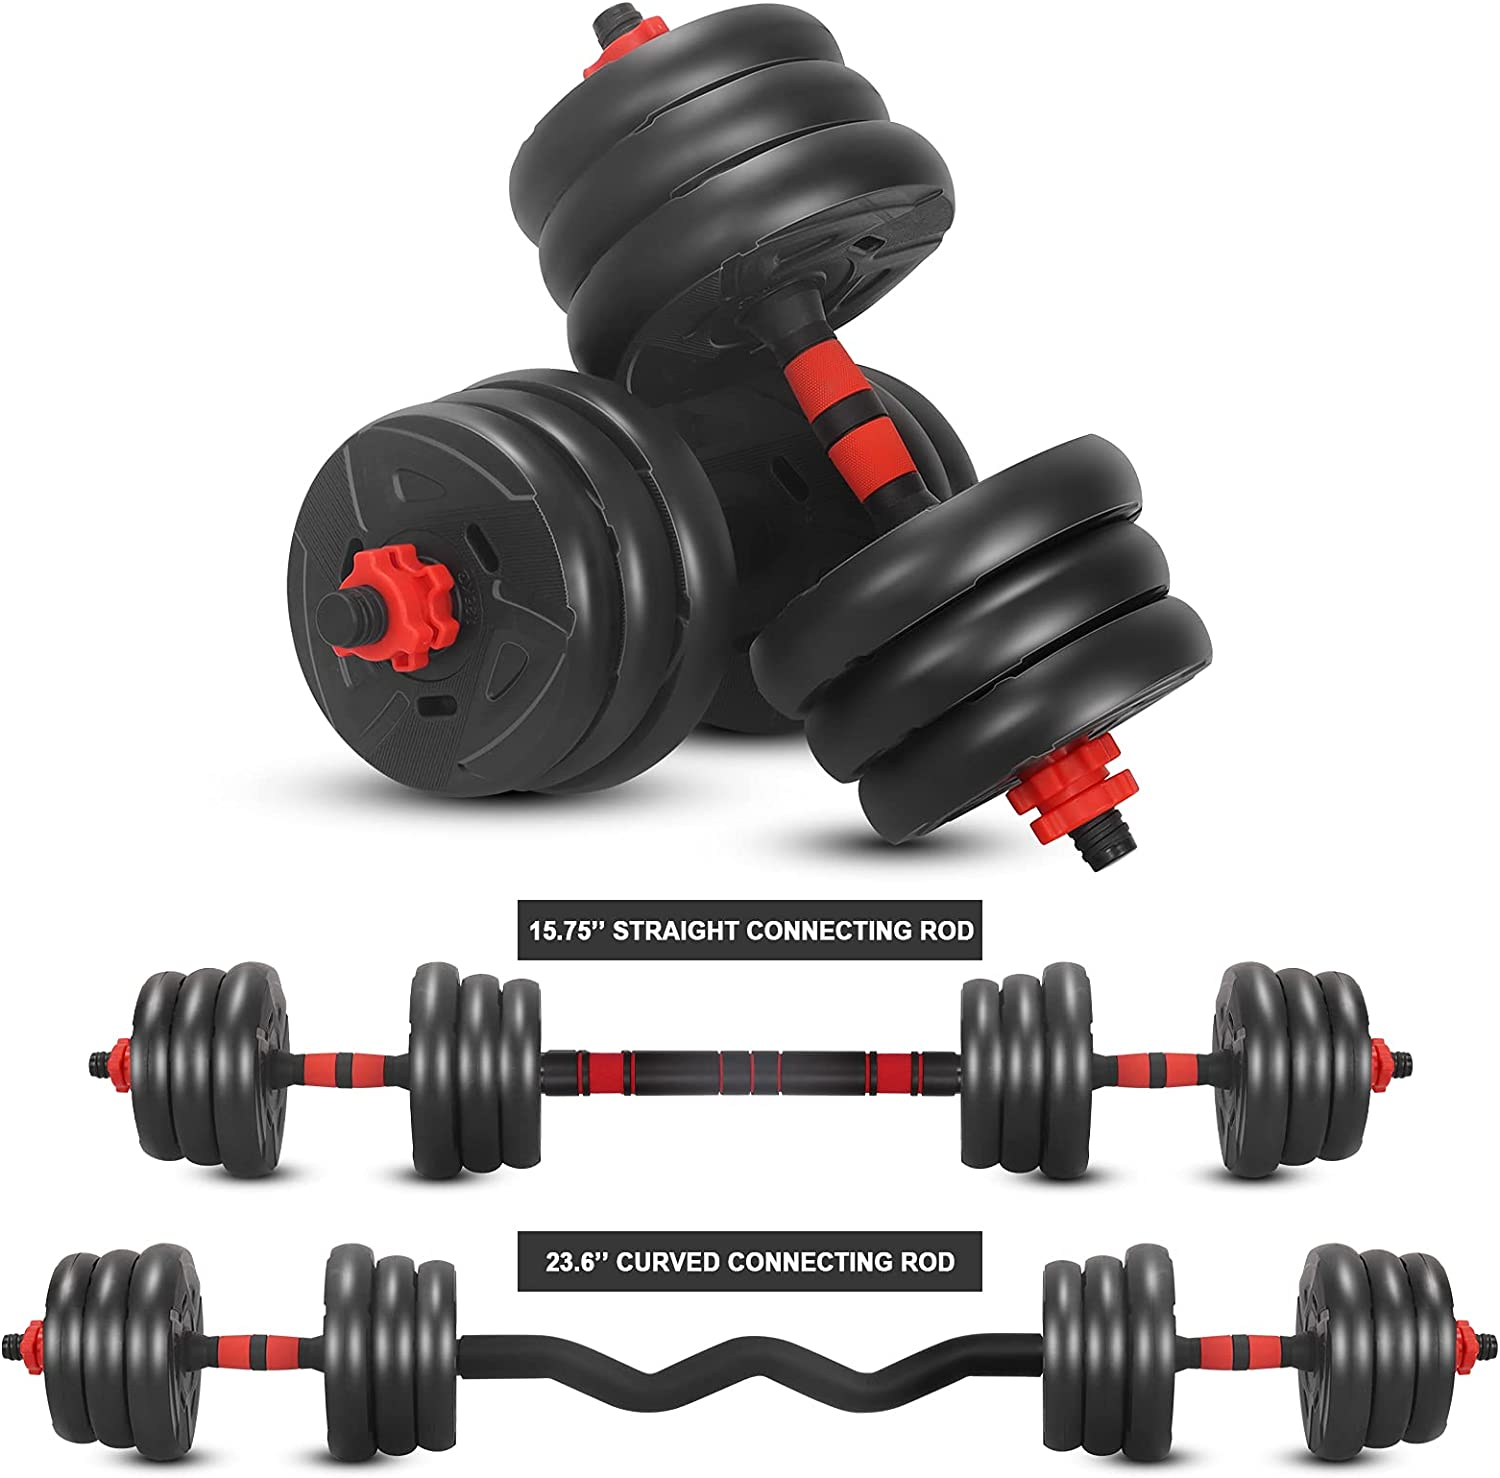 SOFUWG Dumbbell Sets Discount is also Ranking TOP5 underway 5.5~44 lbs 4 Adjustable 1 in Set